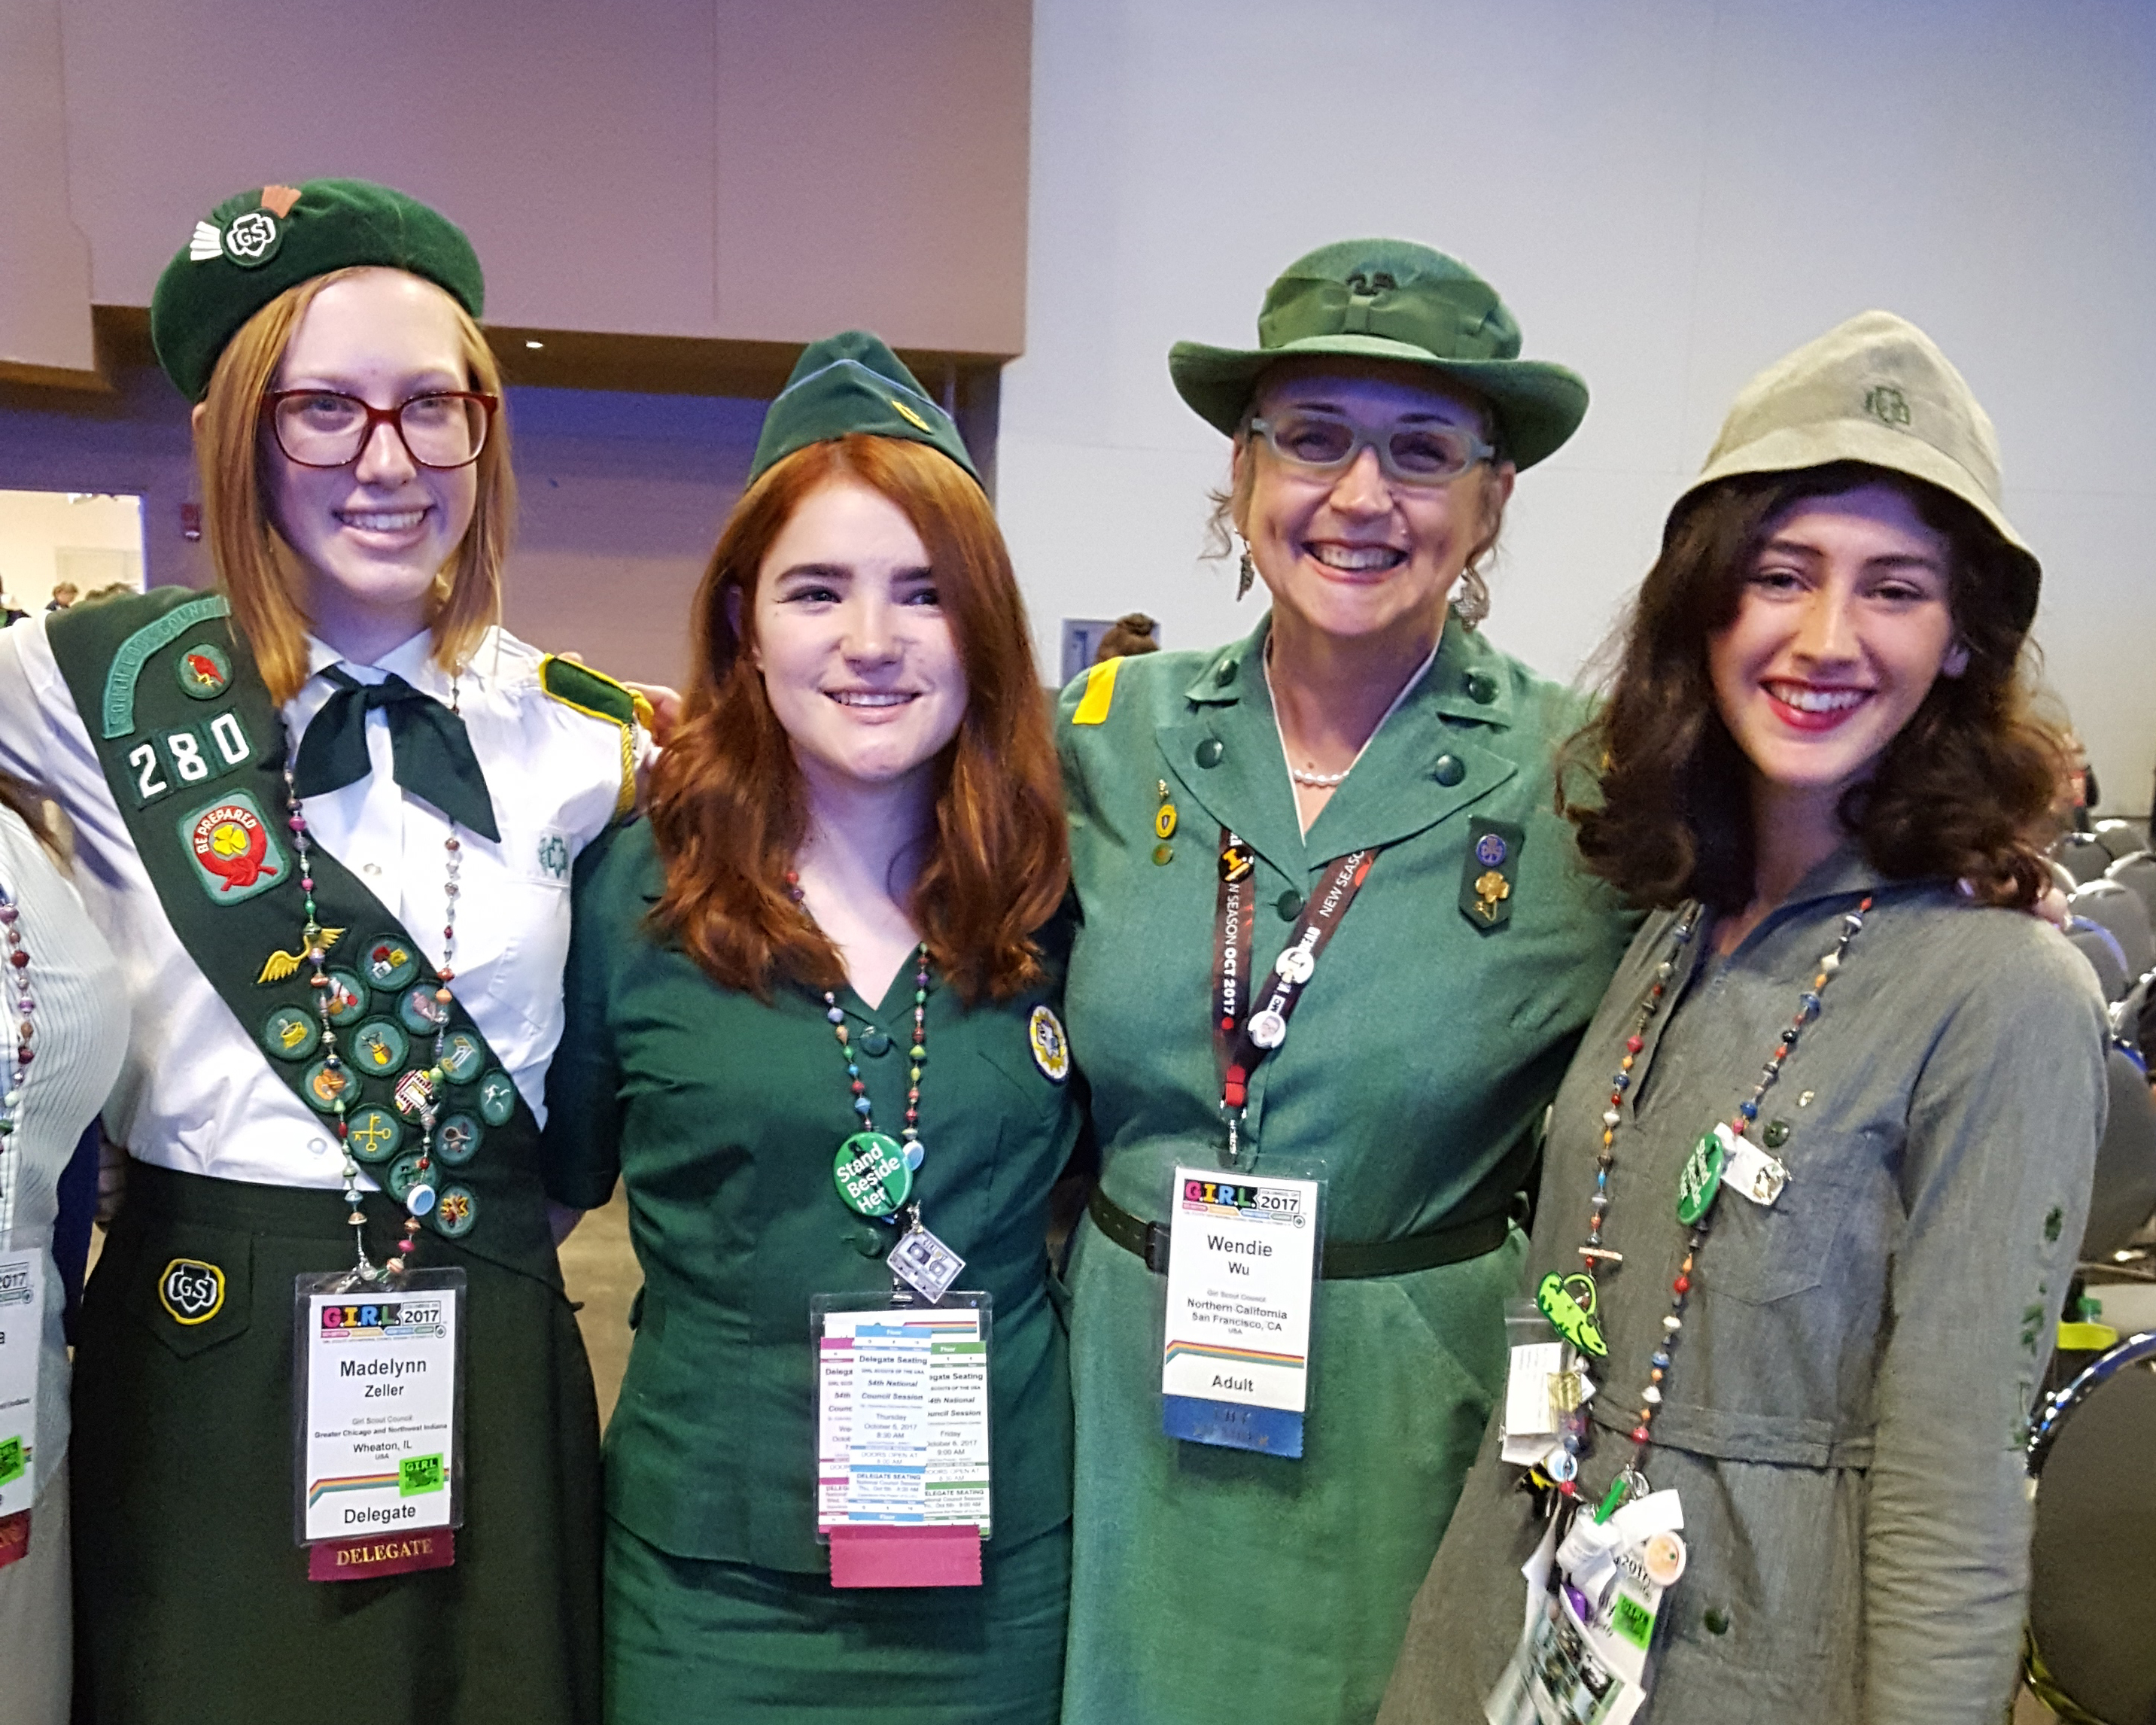 Girl scouts-41040